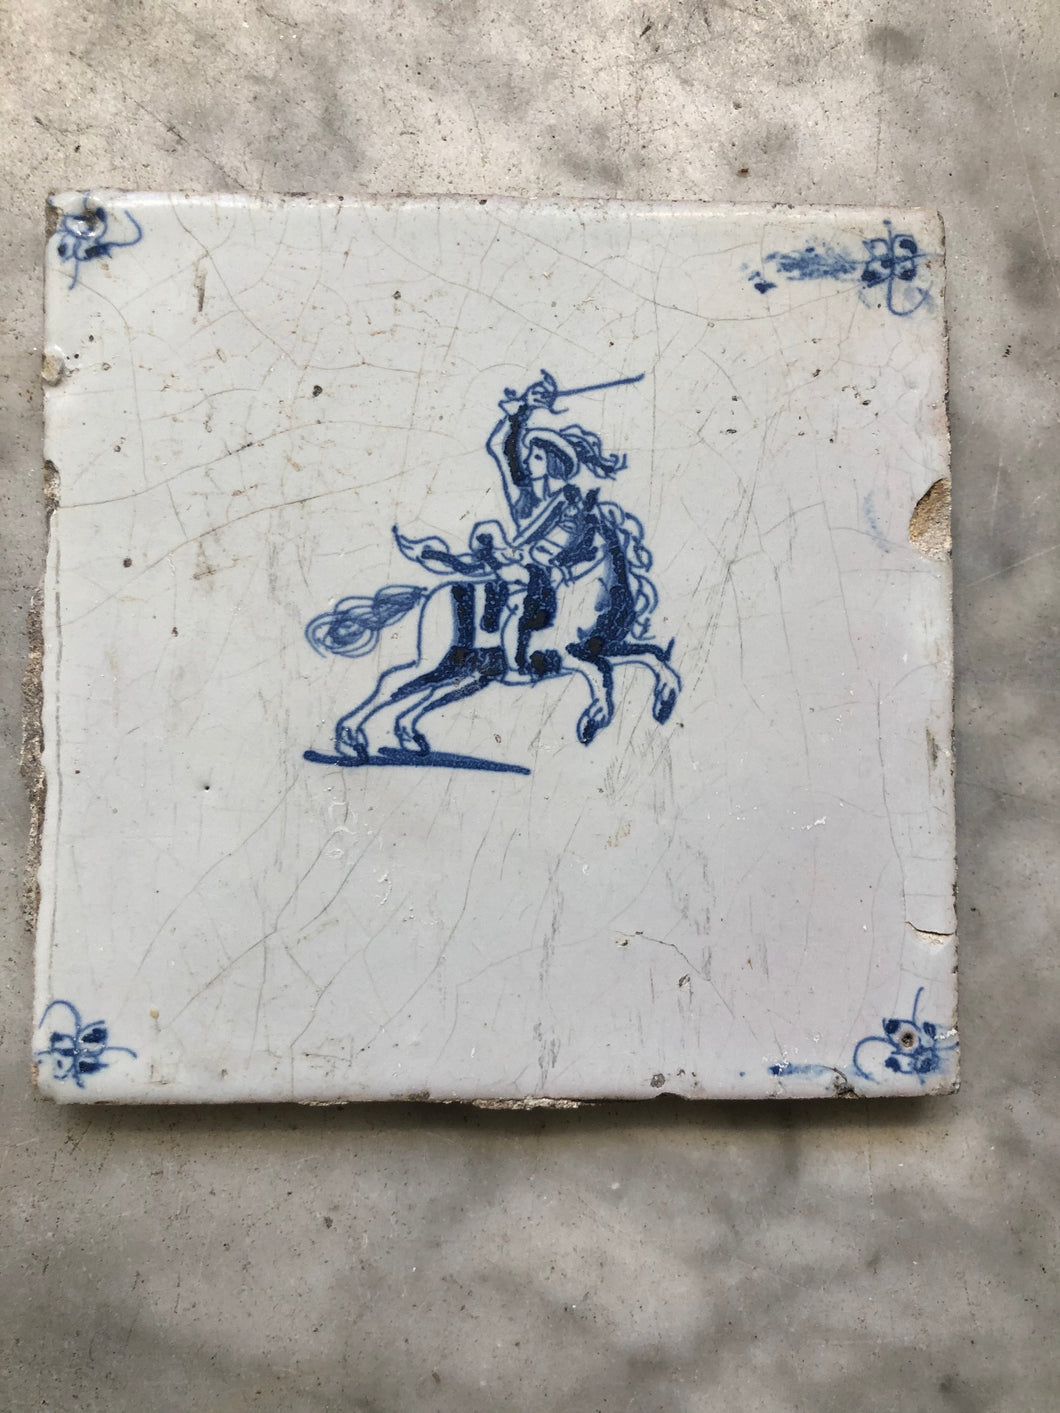 17 th century delft tile with horseman